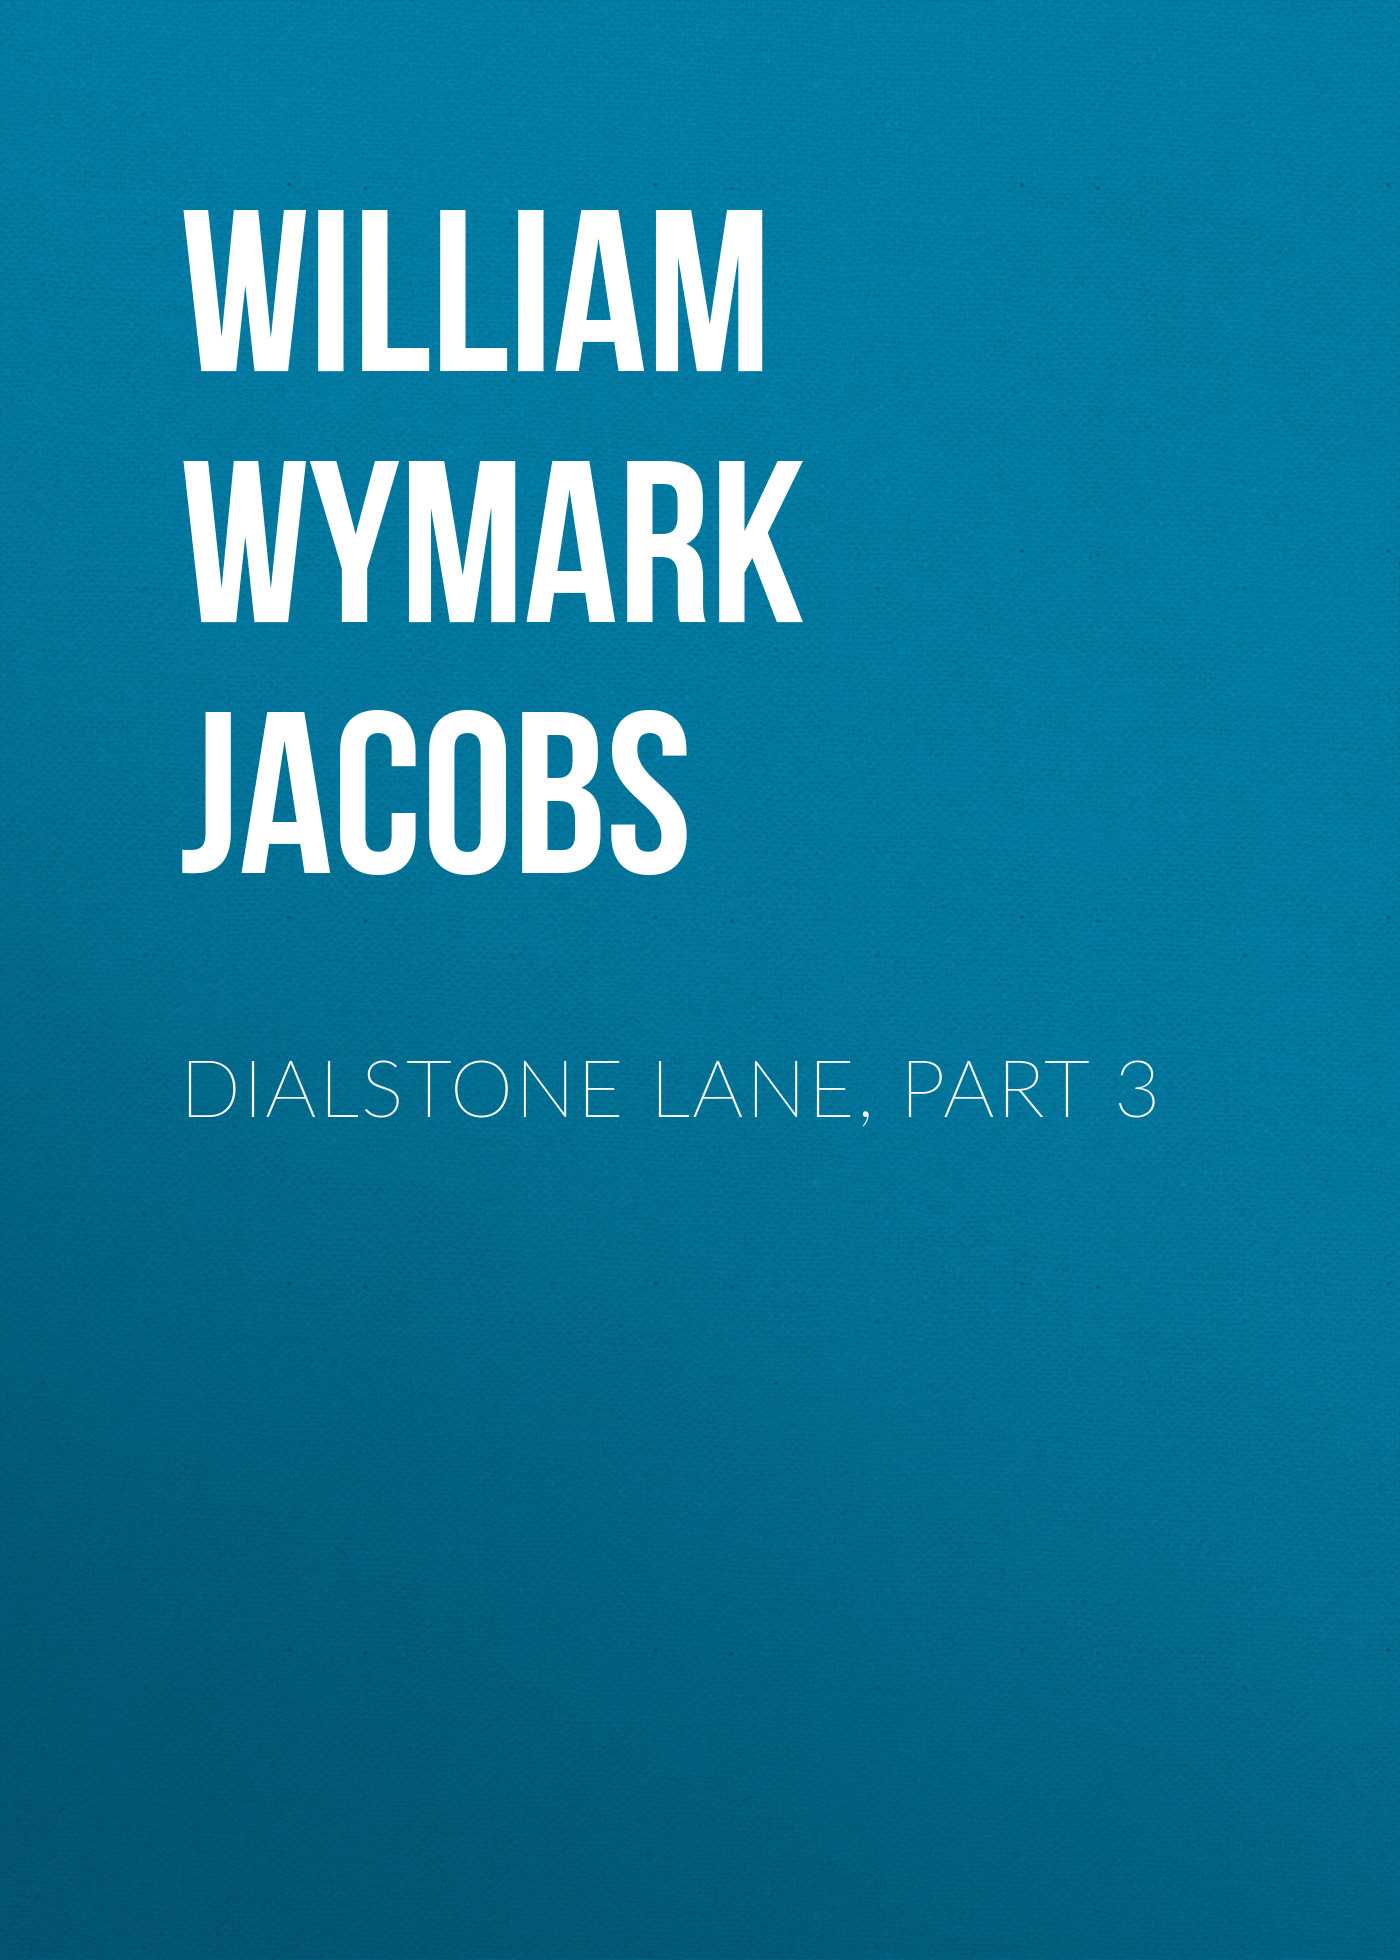 лучшая цена William Wymark Jacobs Dialstone Lane, Part 3